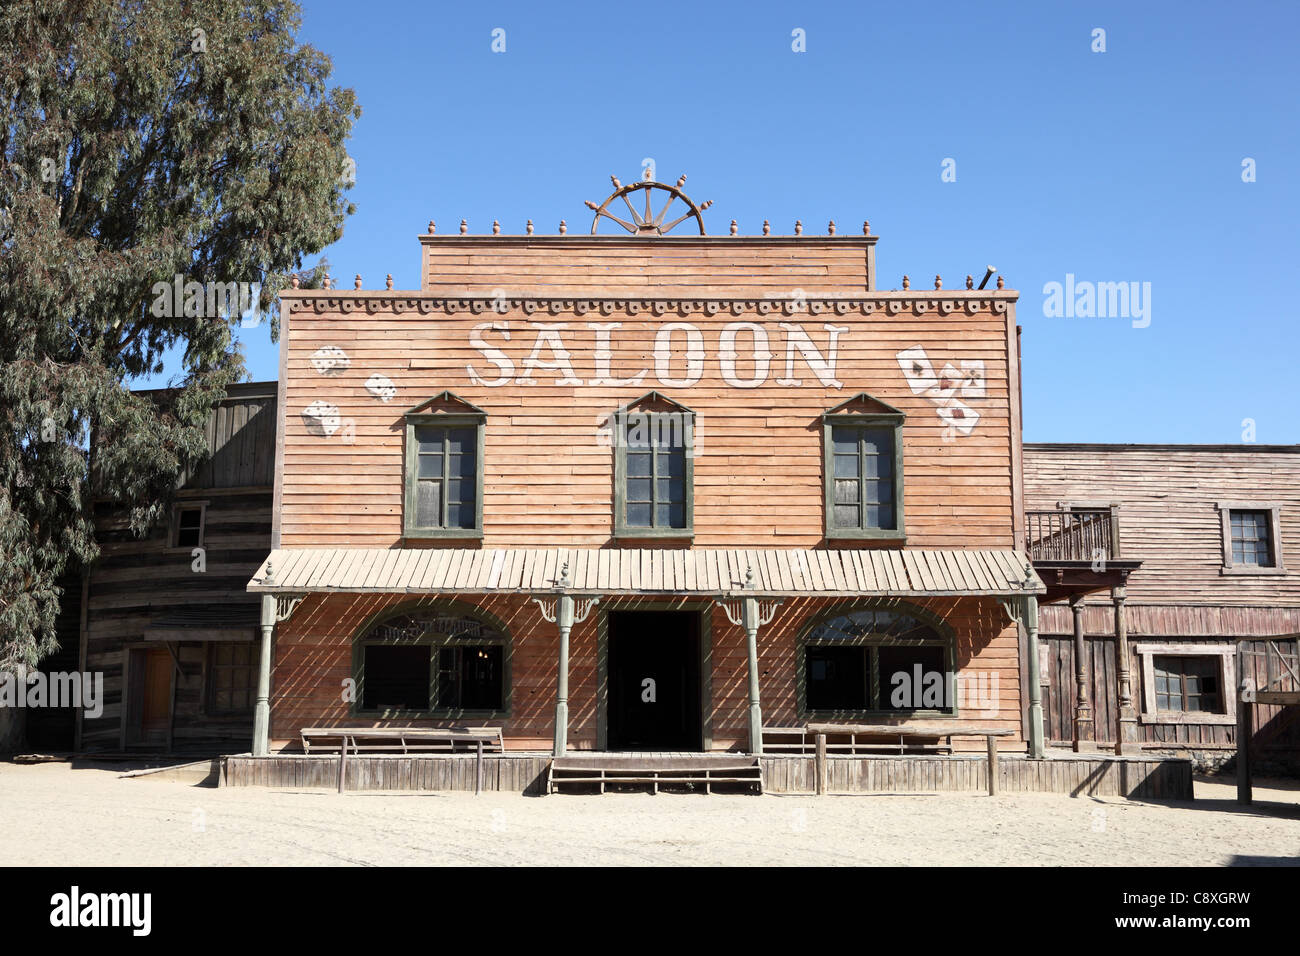 western style saloon in an old american town stock photo 39921949 alamy. Black Bedroom Furniture Sets. Home Design Ideas